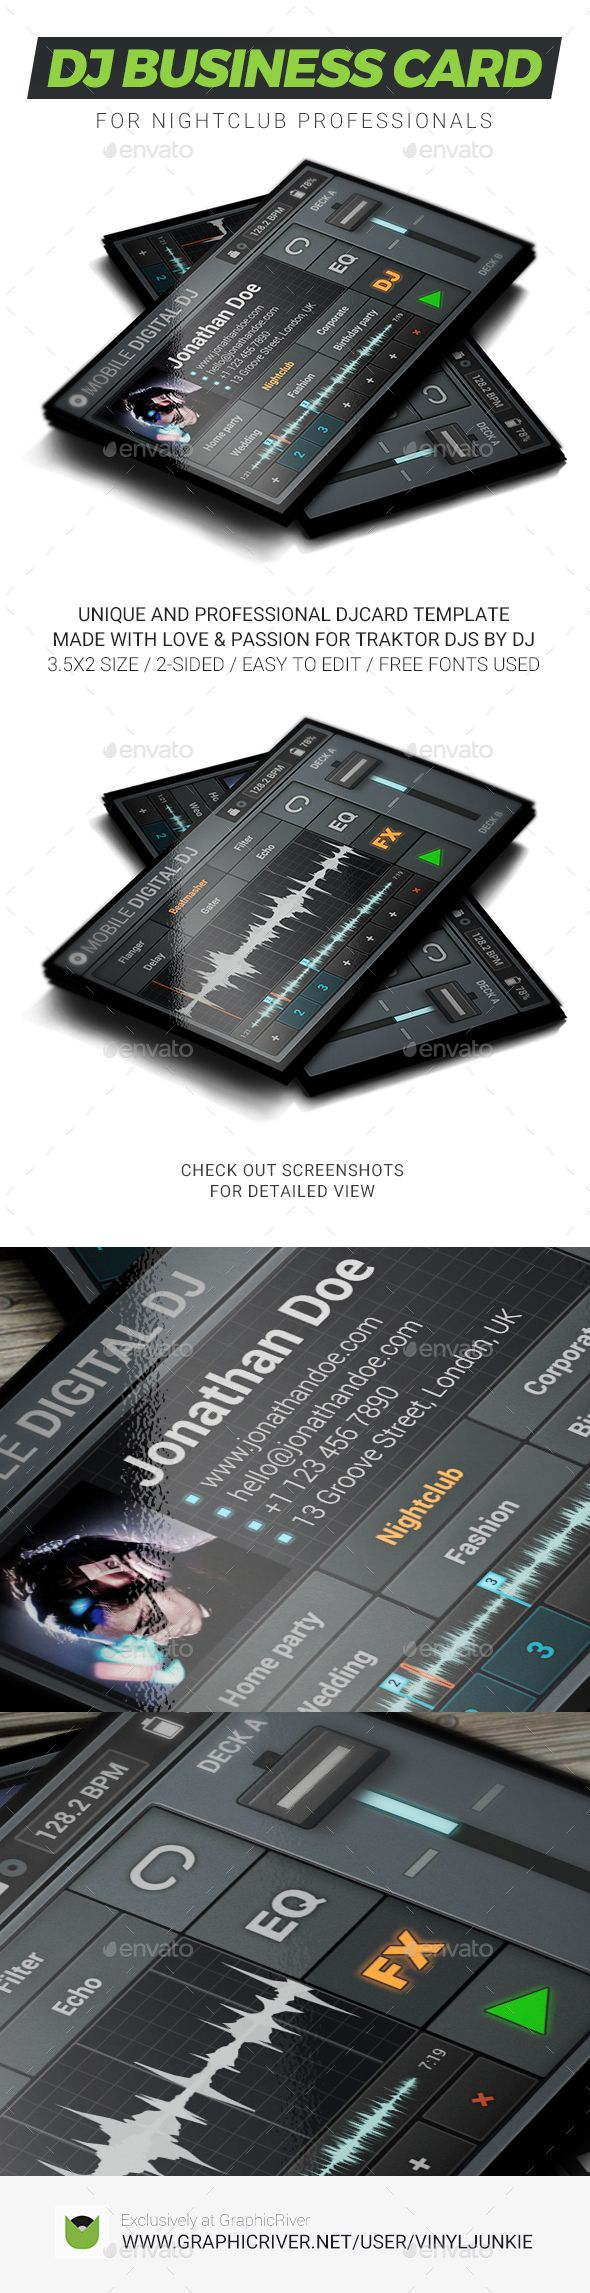 Mobile digital dj business card dj business cards business cards mobile digital dj business card reheart Gallery